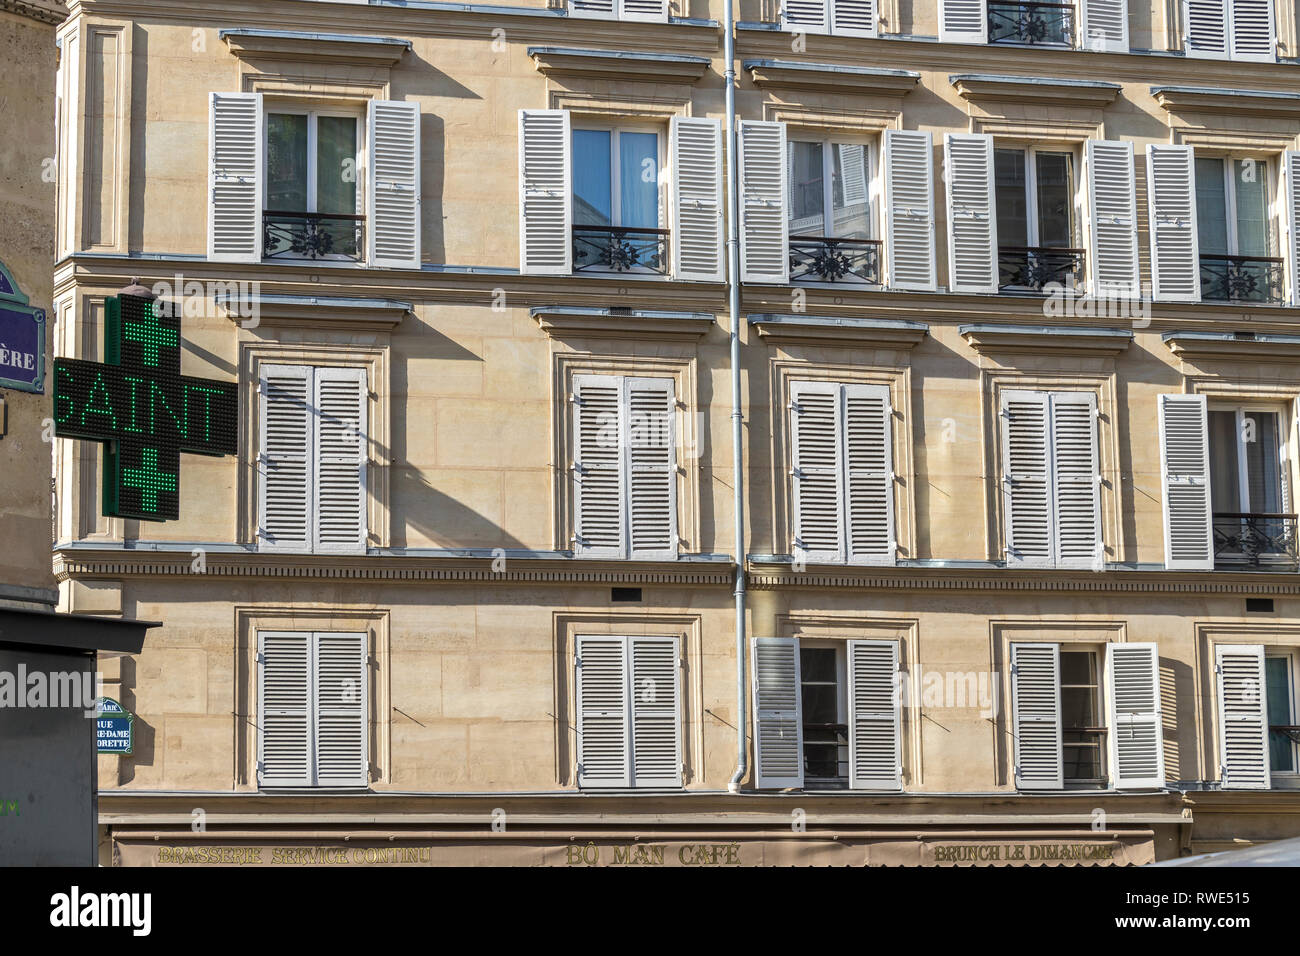 Paris apartments with wooden shutters on the windows in the sunshine ,Rue Notre Dame de Lorette,St Georges in the 9th arrondissement of Paris Stock Photo